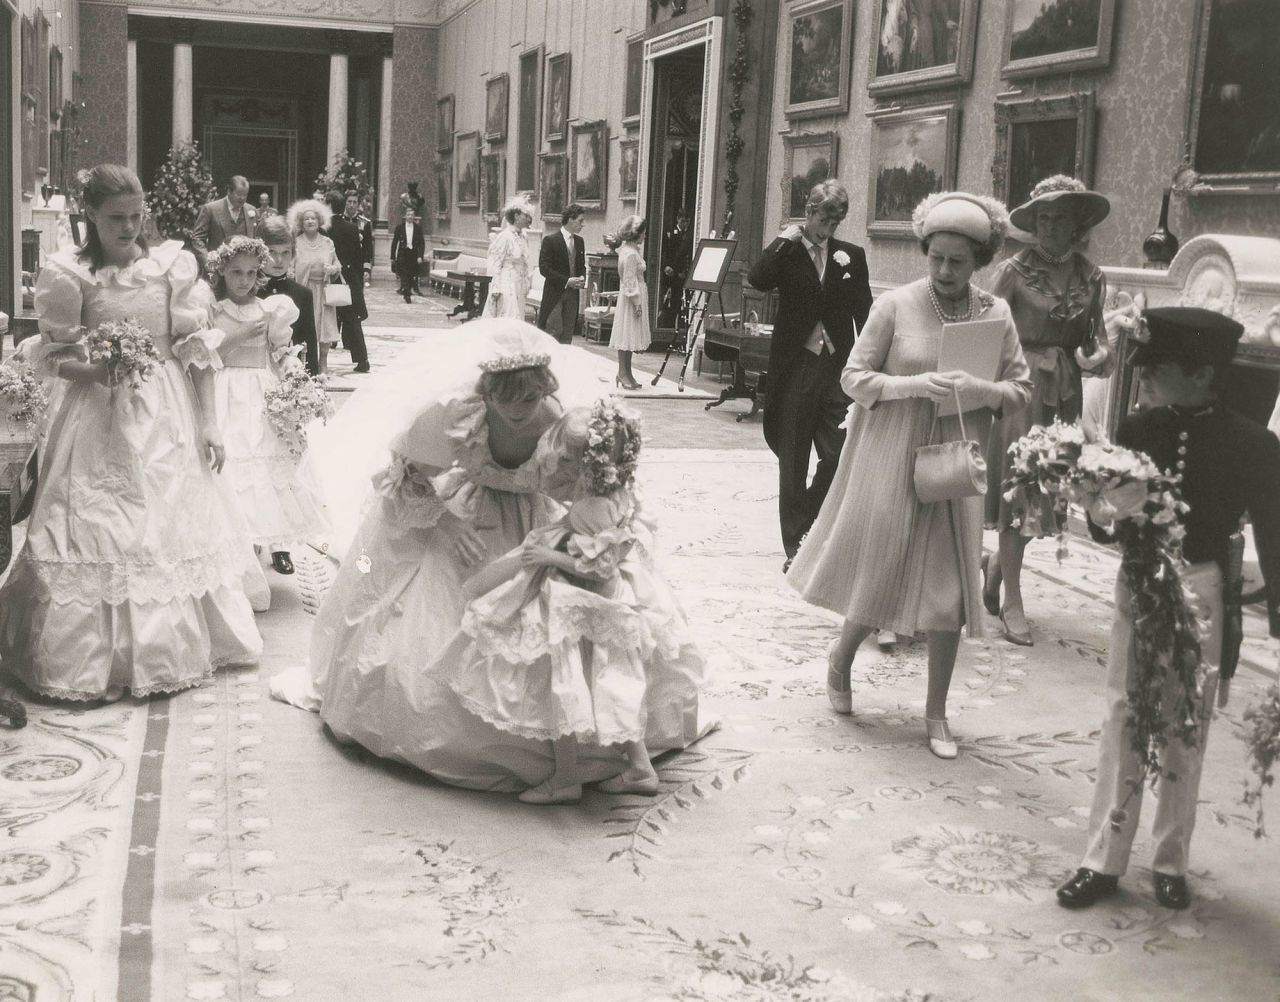 PRINCESS DIANA'S UNSEEN WEDDING PHOTOS BY LORD LICHFIELD